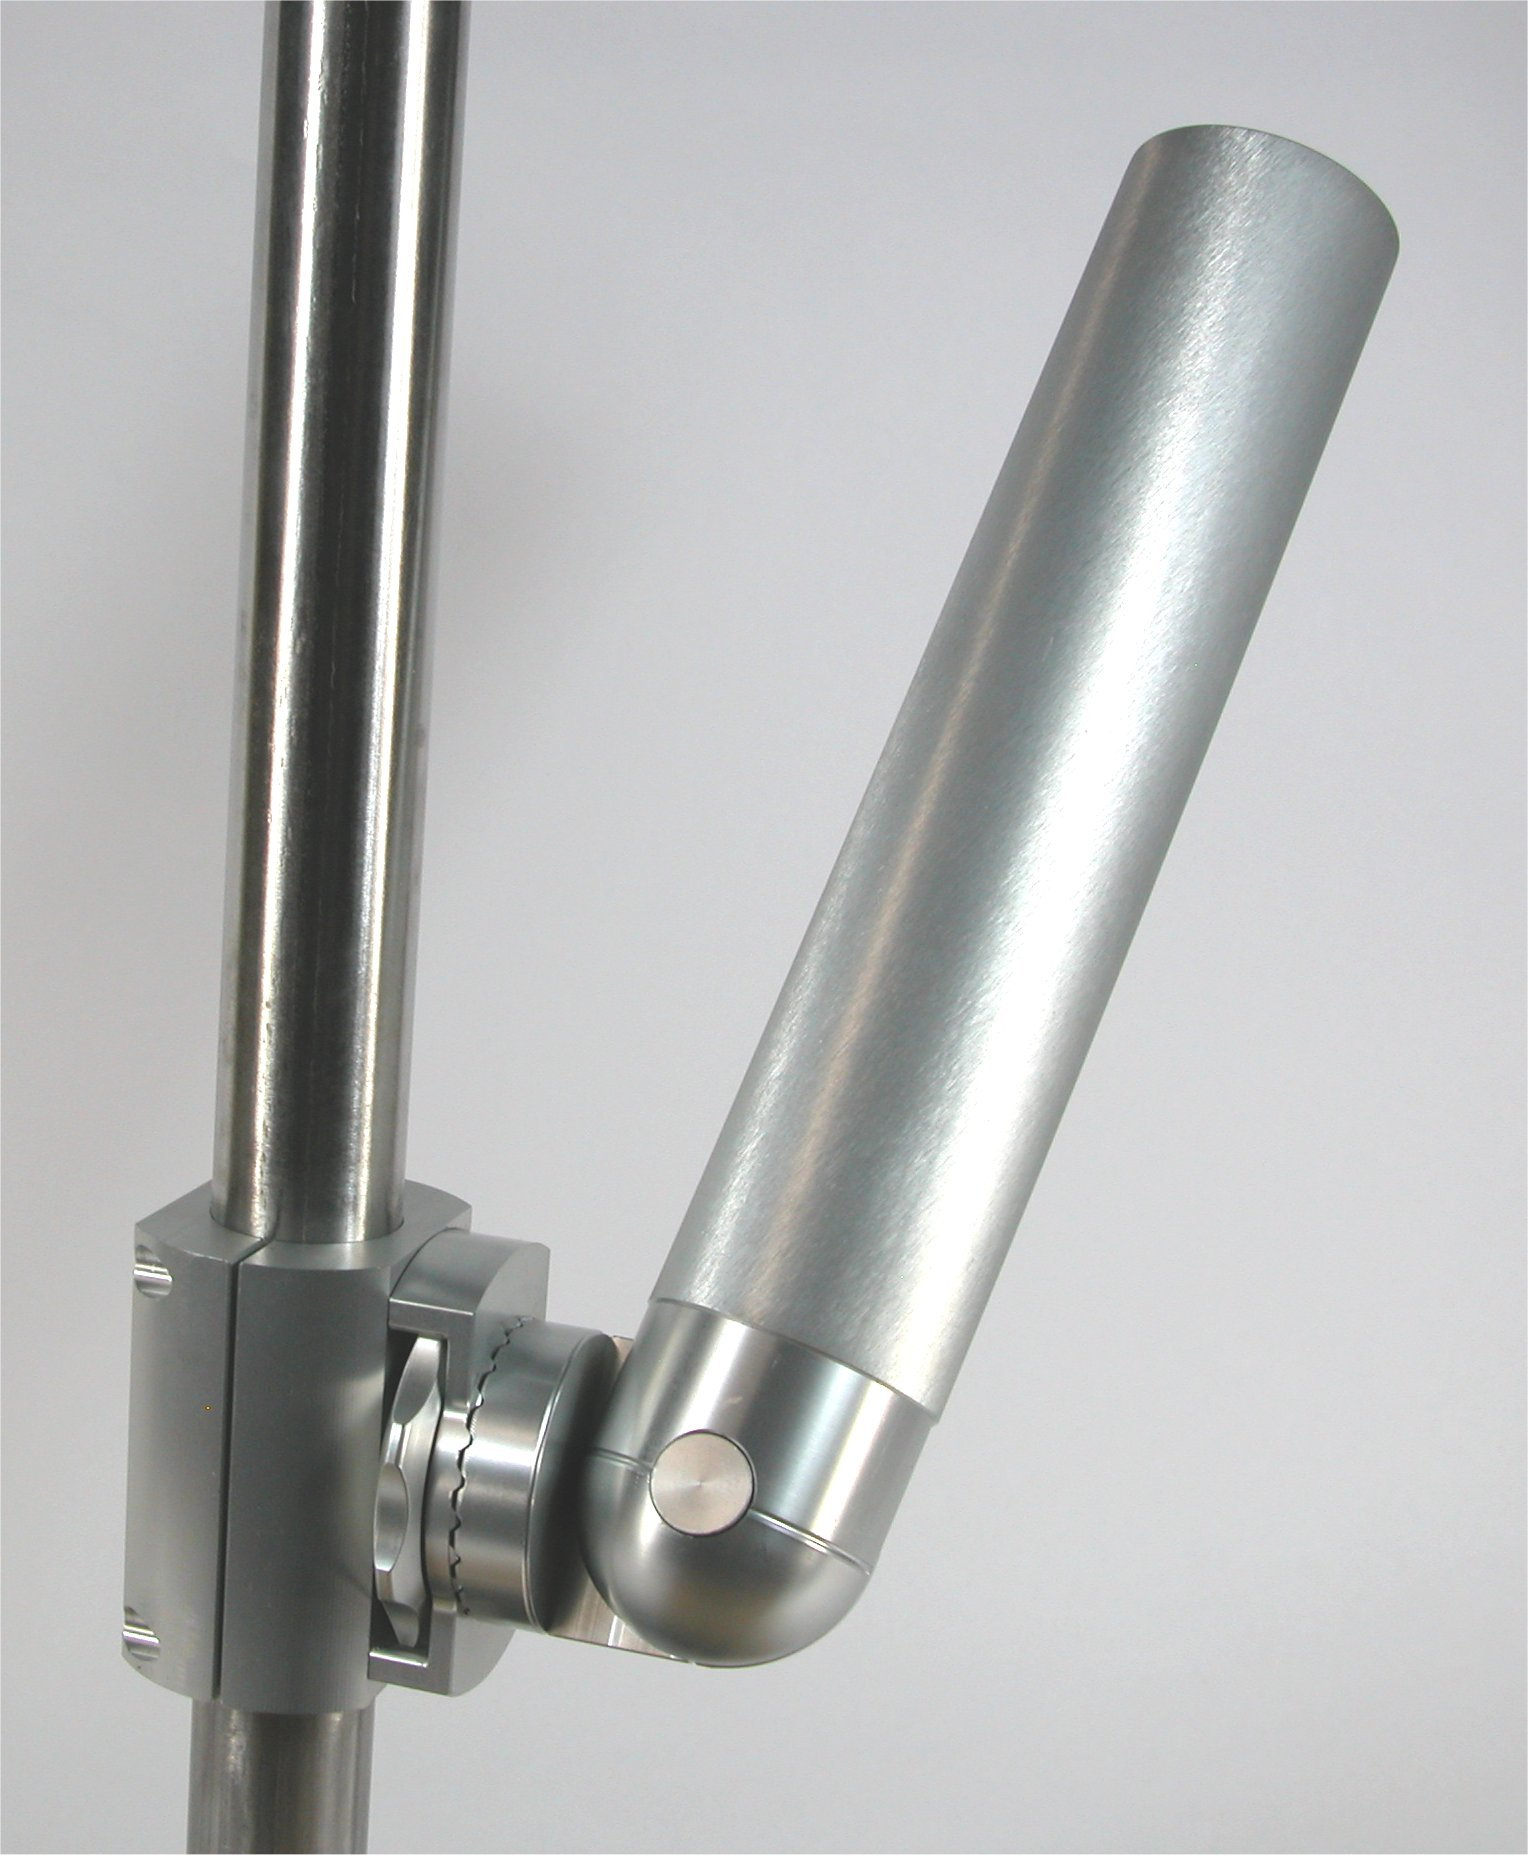 Magnum Rail Mount with Nut-Loc design